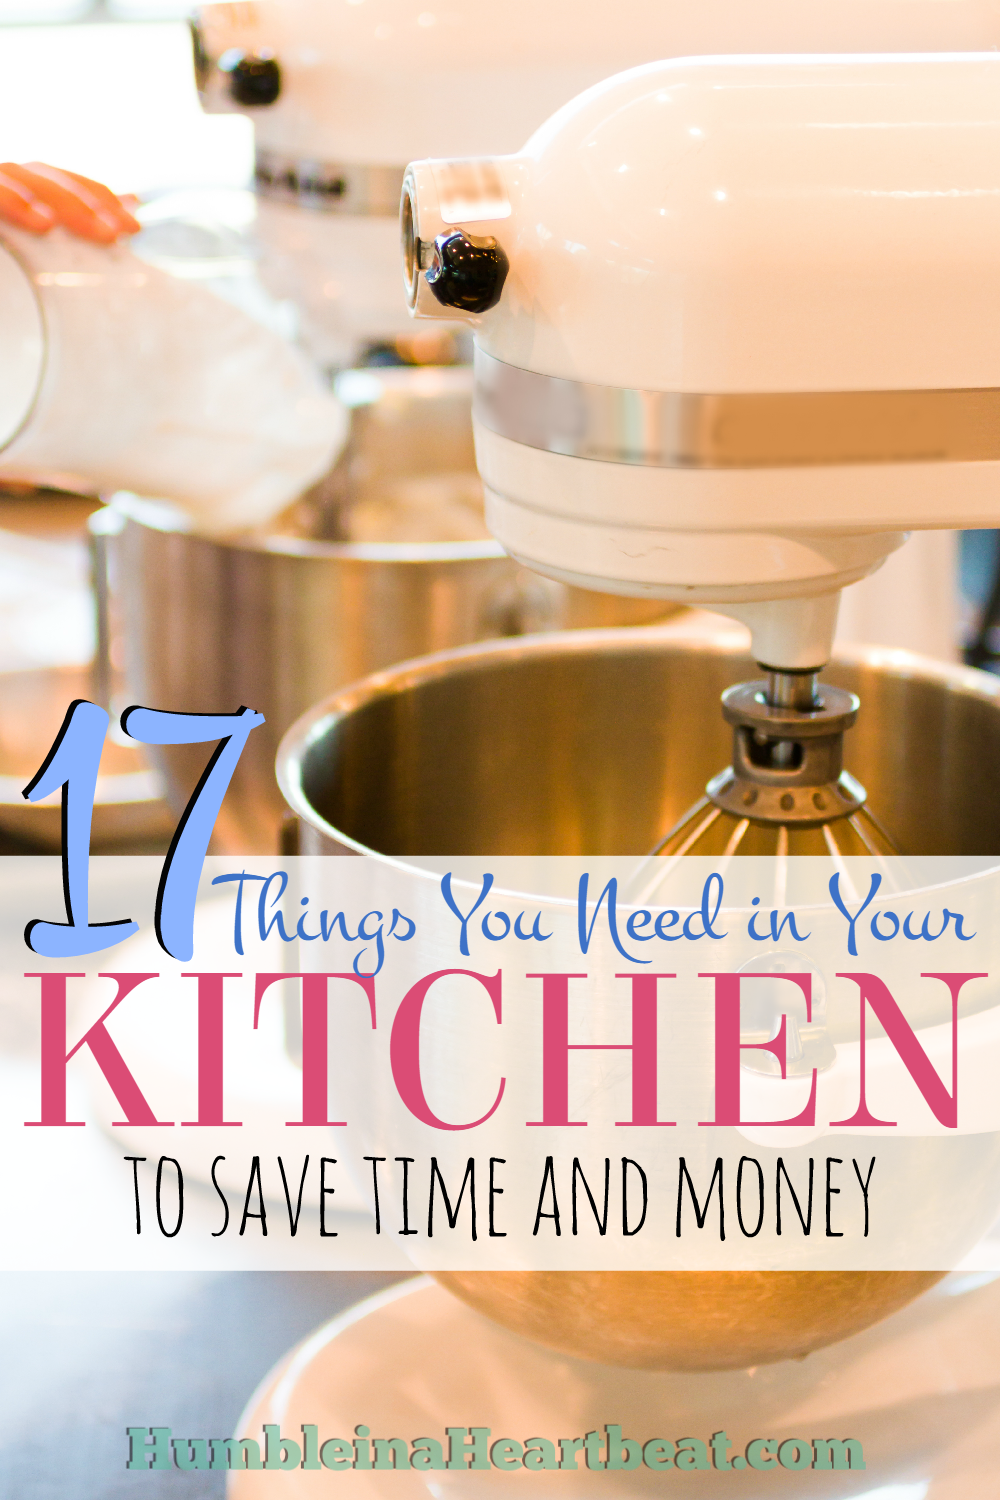 What if you didn't have to spend all day in the kitchen cooking? Would you stop getting takeout and buying packaged foods from the grocery store? Check out these kitchen appliances and tools that will help you save both time and money as you cook more and more at home.